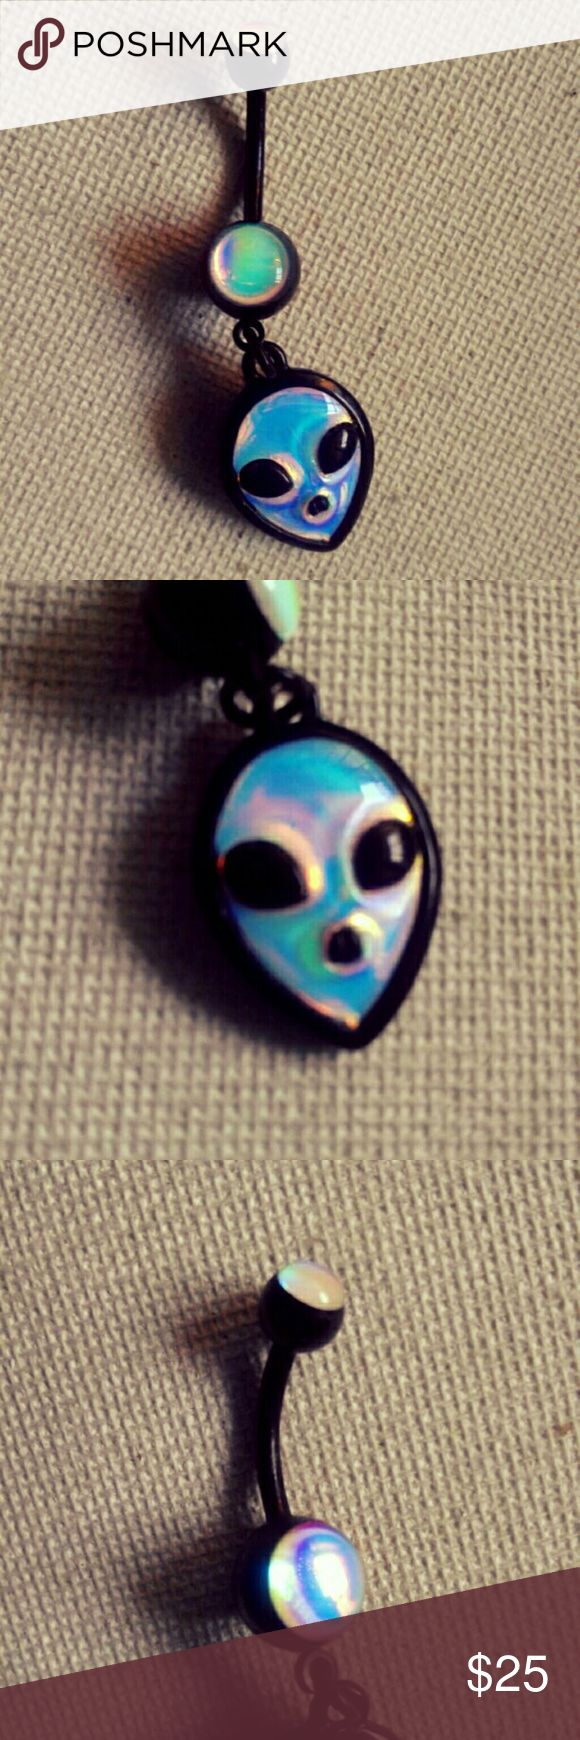 Black Holographic Alien Belly Ring 14g Black Holographic Alien Belly Ring 14g Brand New Surgical Steel/Titanium Plated Jewelry